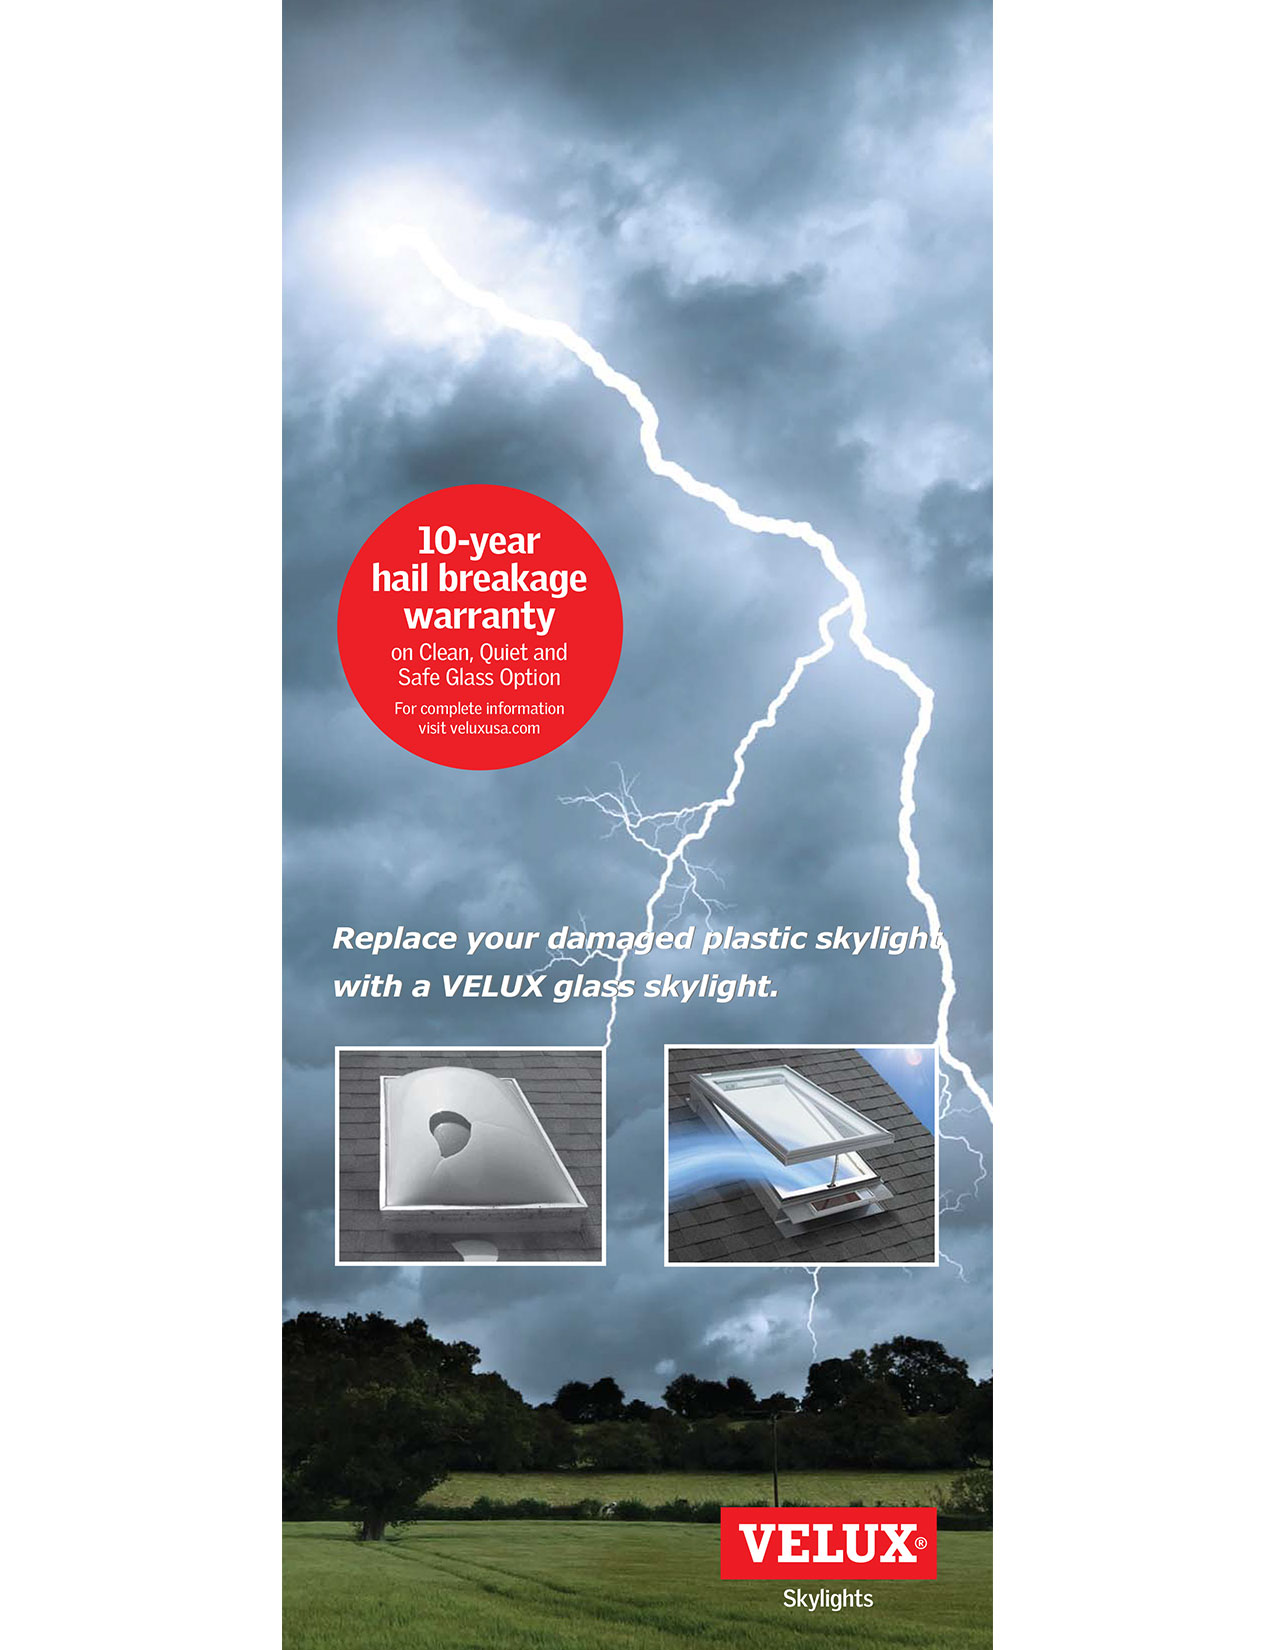 Replace your damaged plastic skylight with VELUX glass skylight